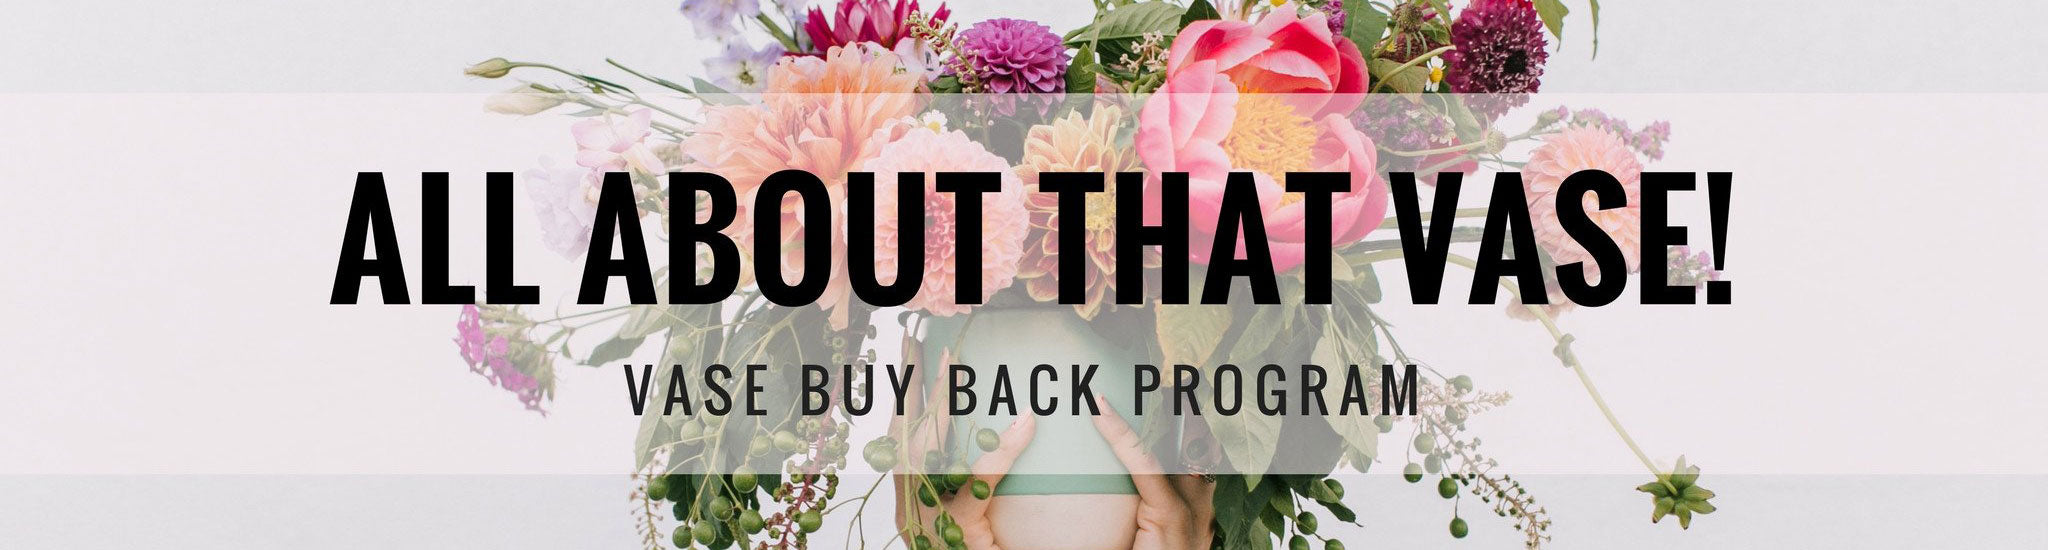 Vase Buy Back Program